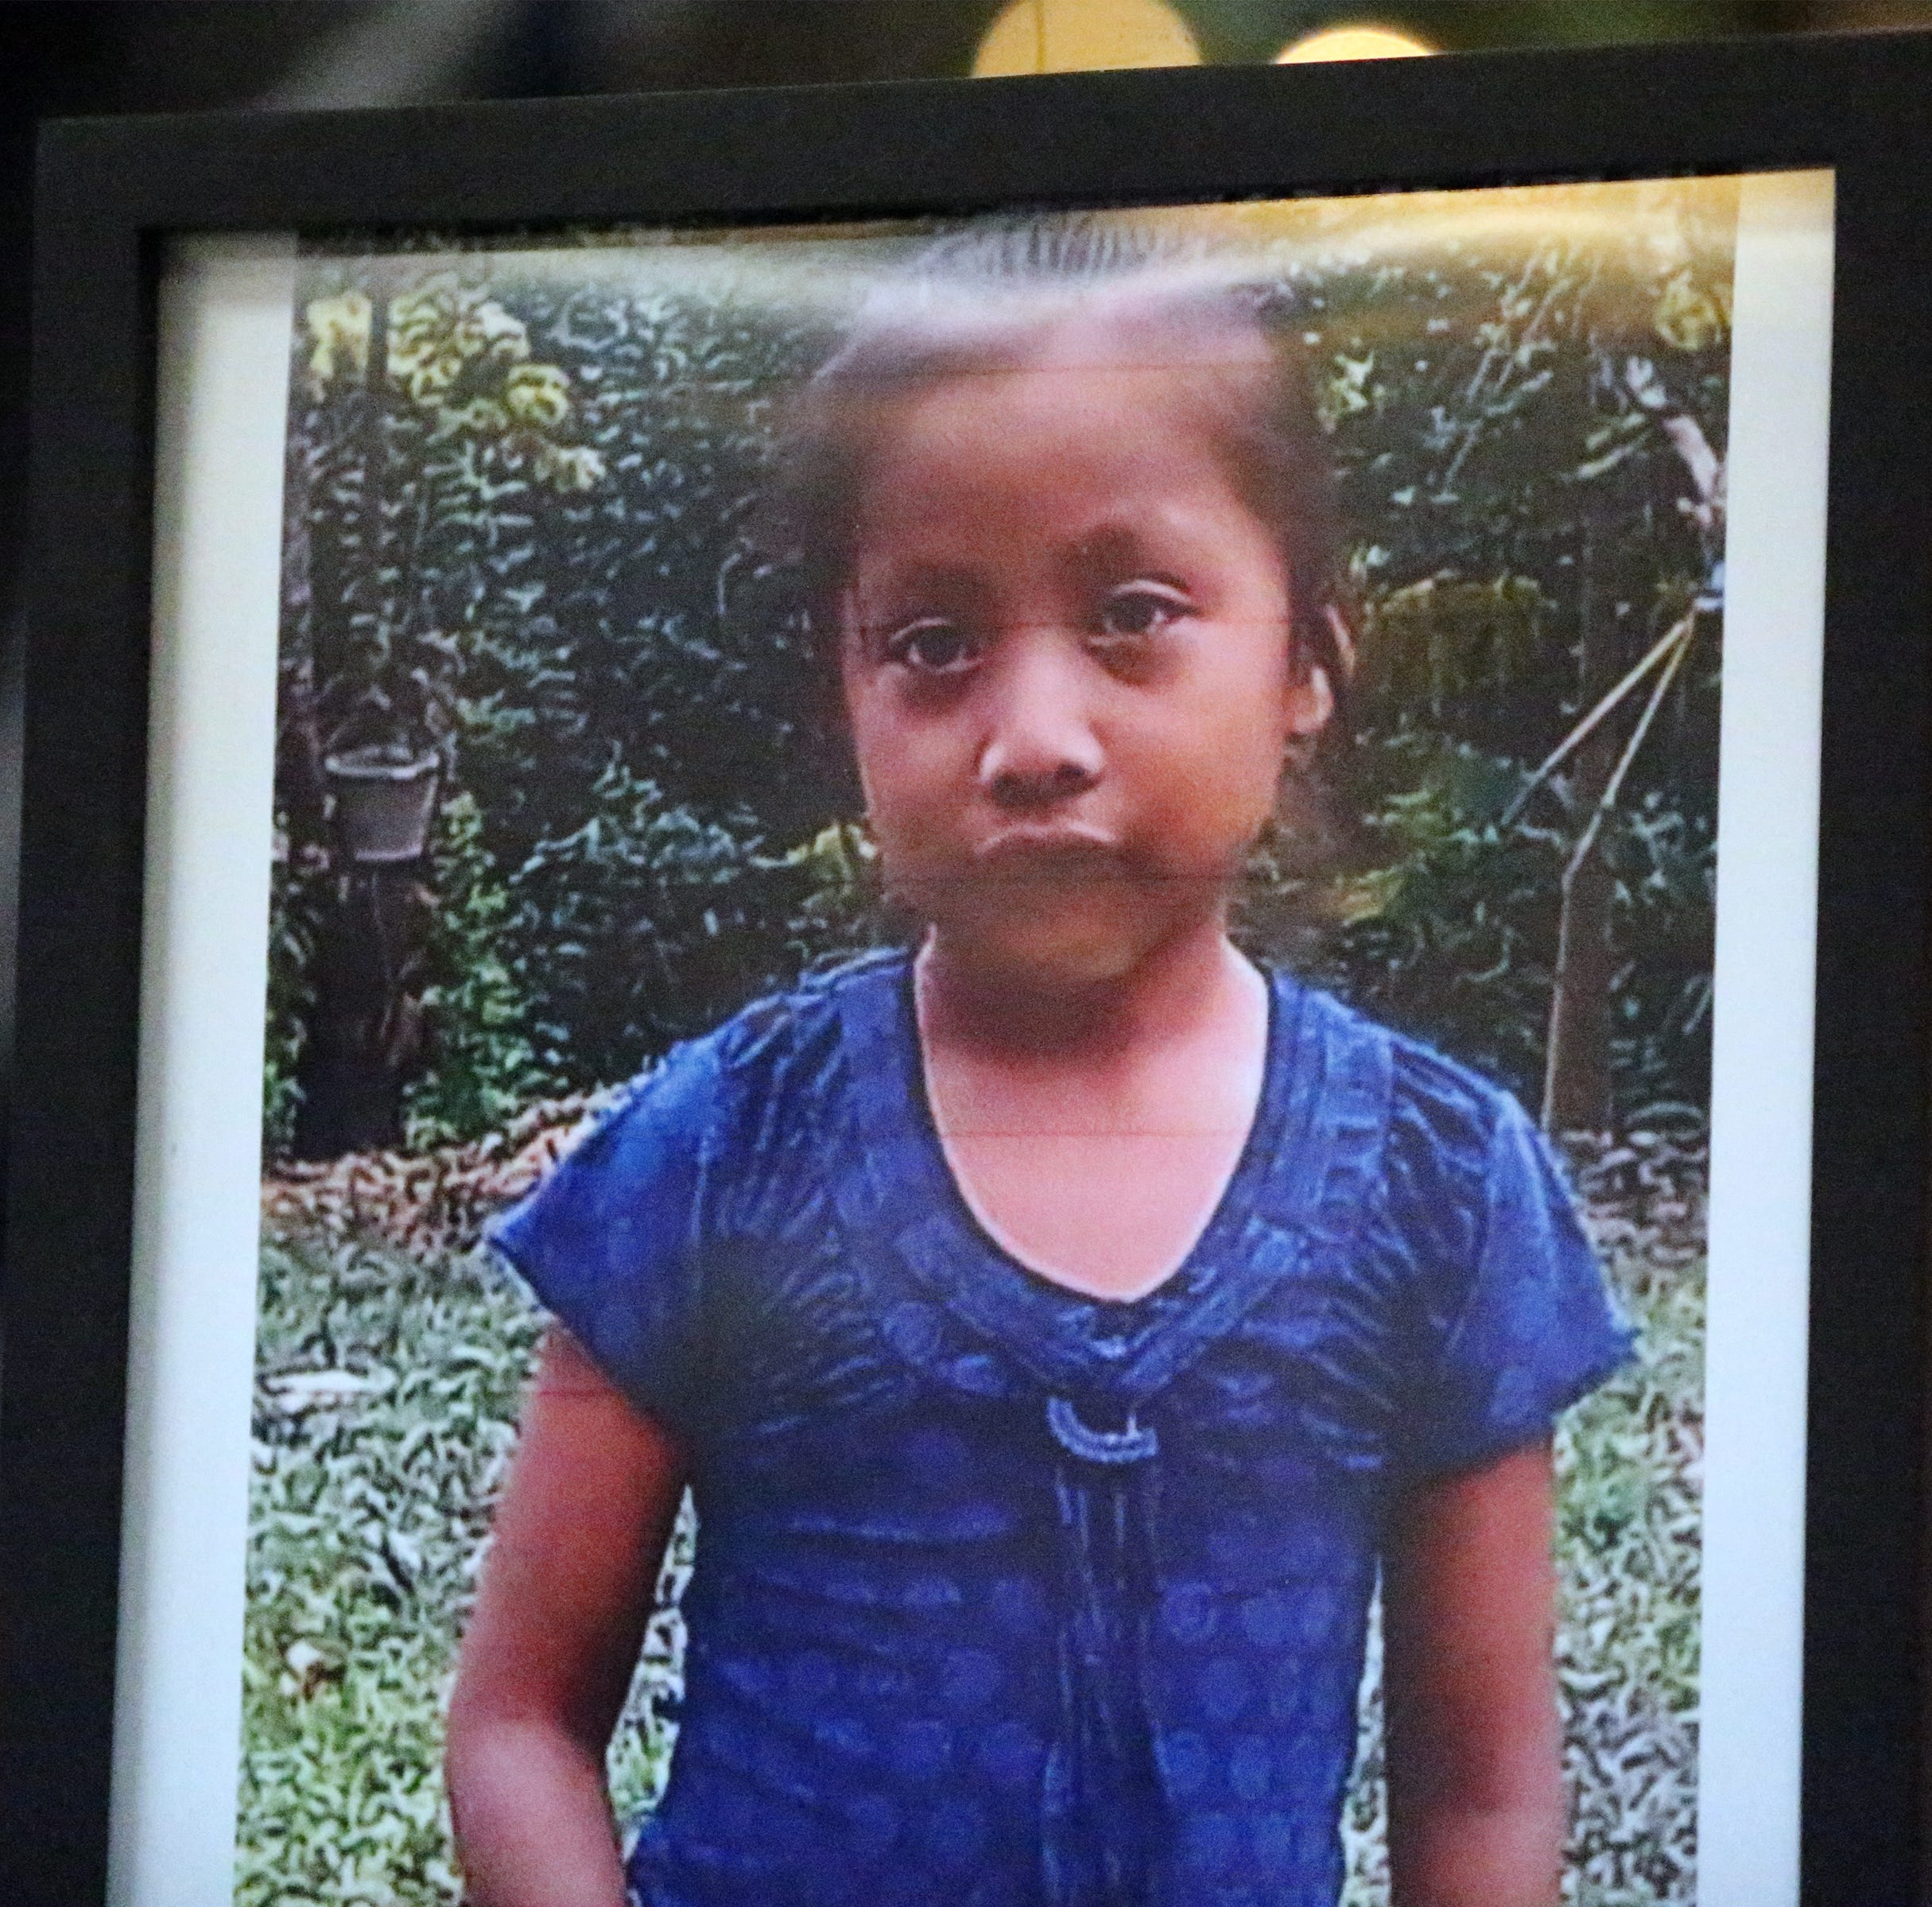 Guatemalan migrant girl who died in El Paso awaits long journey to home village